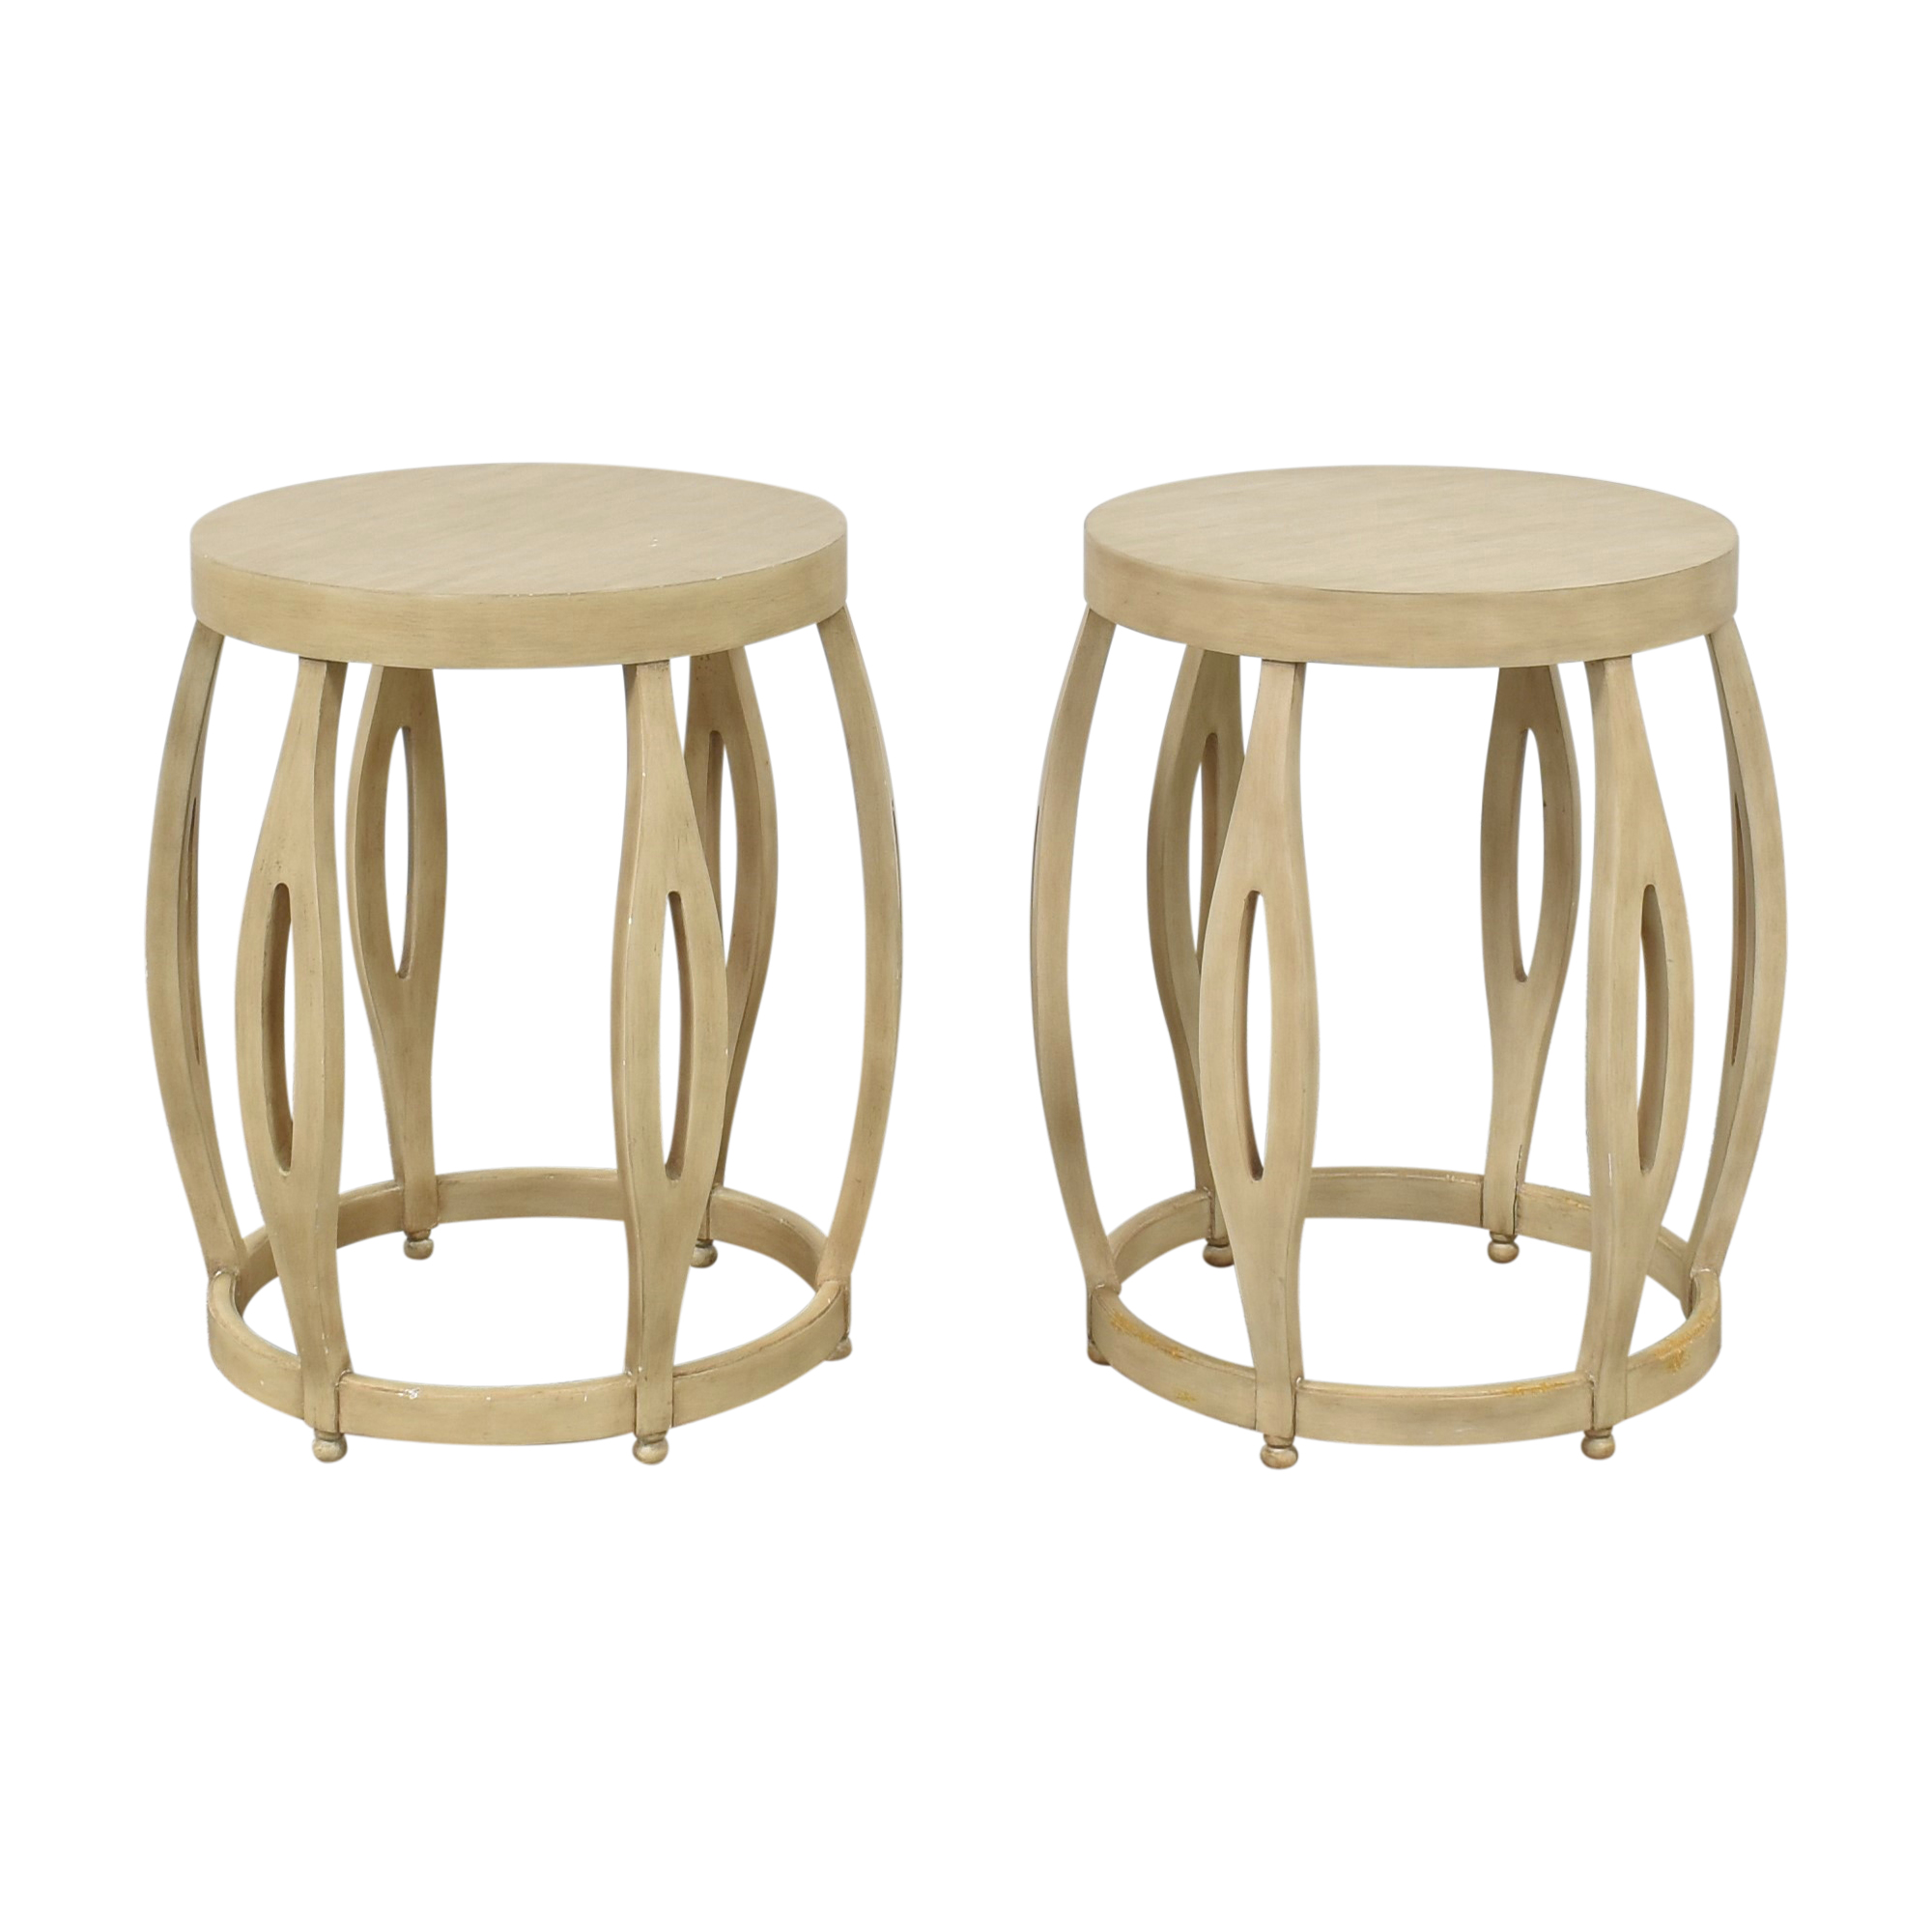 Kathy Kuo Home Kathy Kuo Home Drum End Tables price